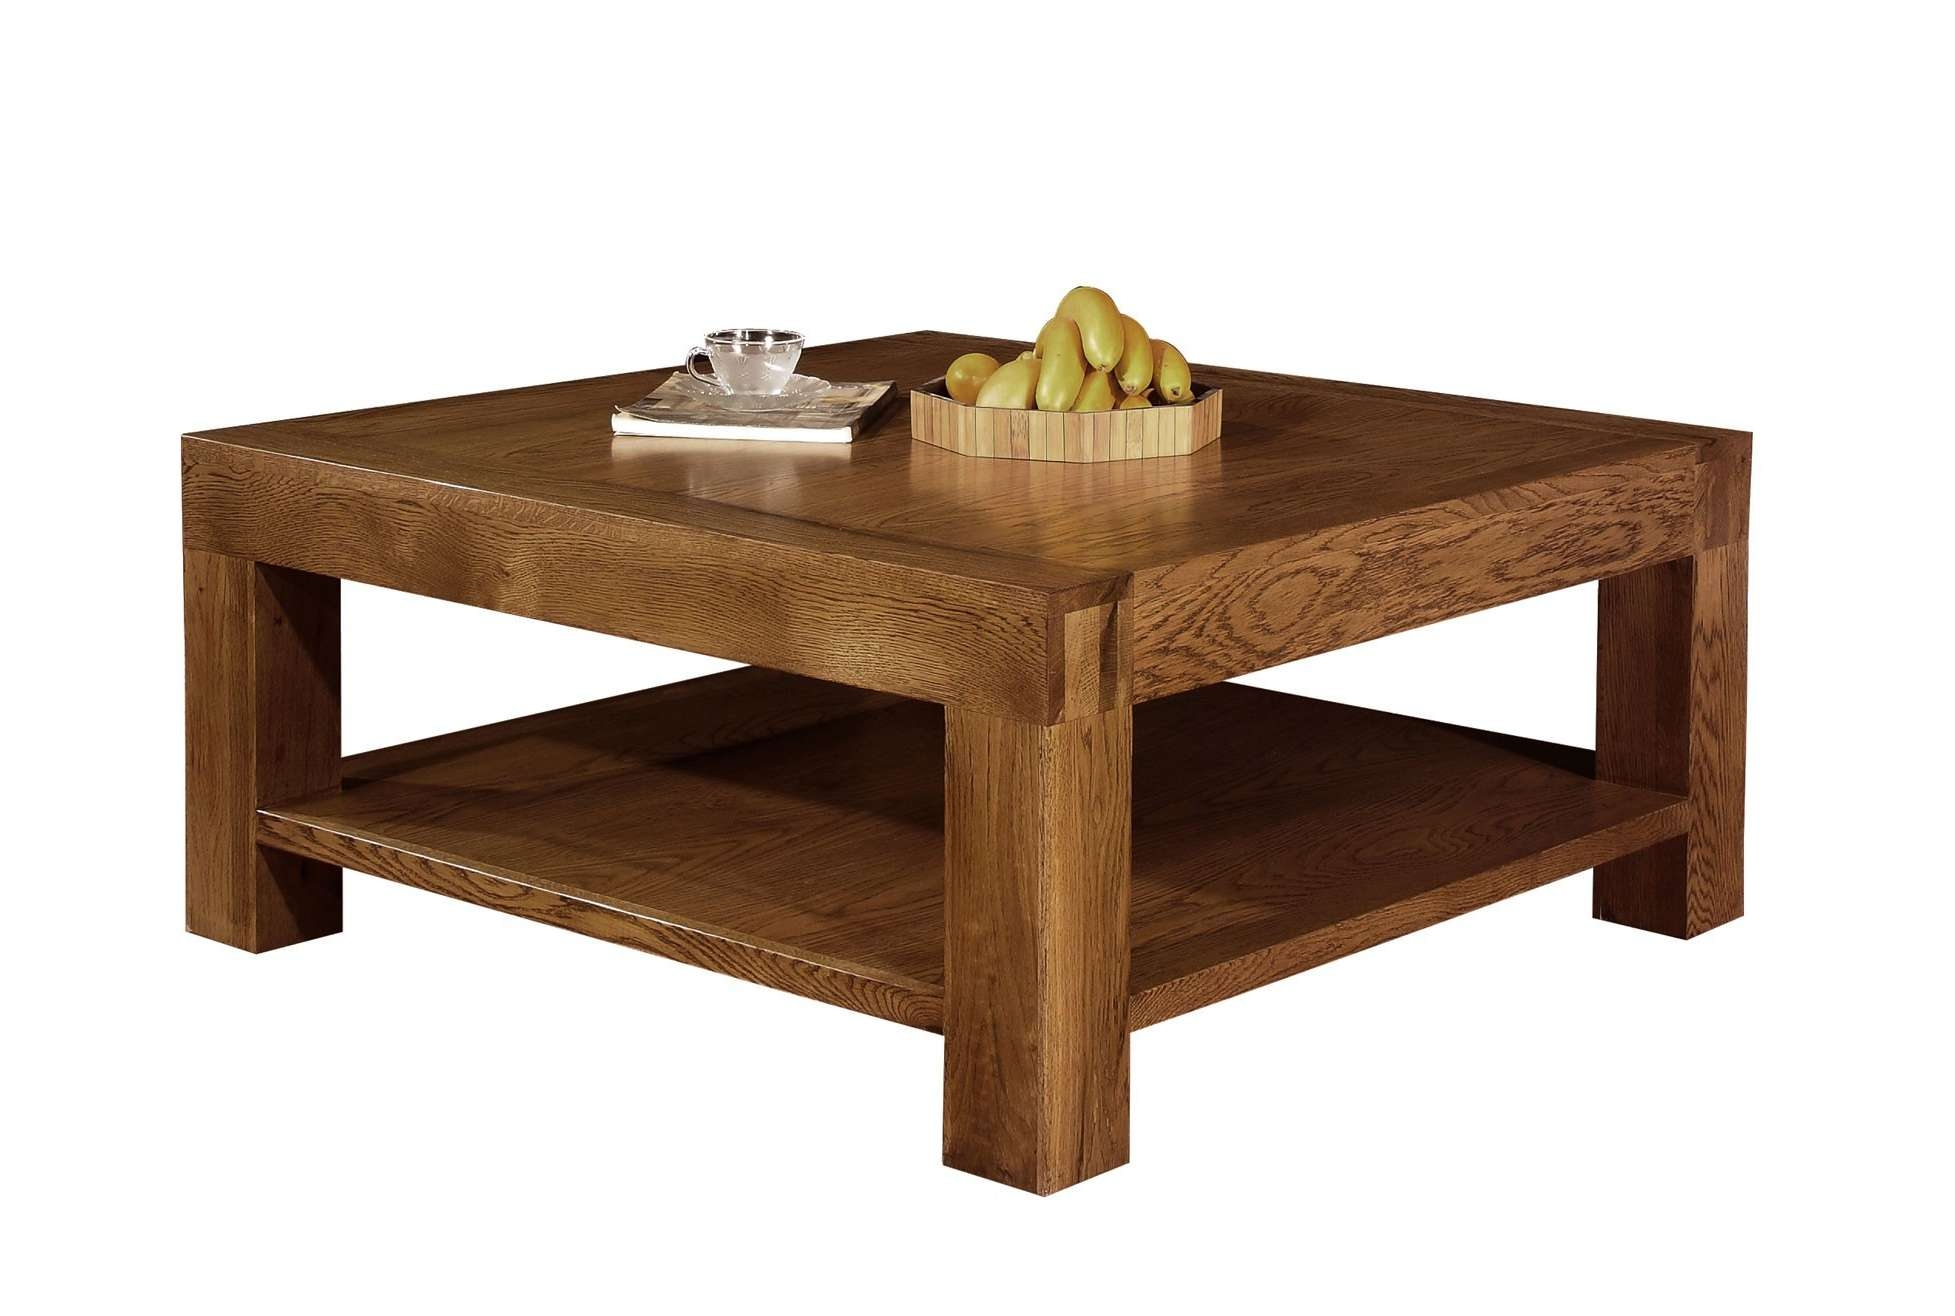 Most Recent Square Wooden Coffee Table Pertaining To Coffee Tables : Square Wood Coffee Table Black Coffee Table' Cheap (View 16 of 20)